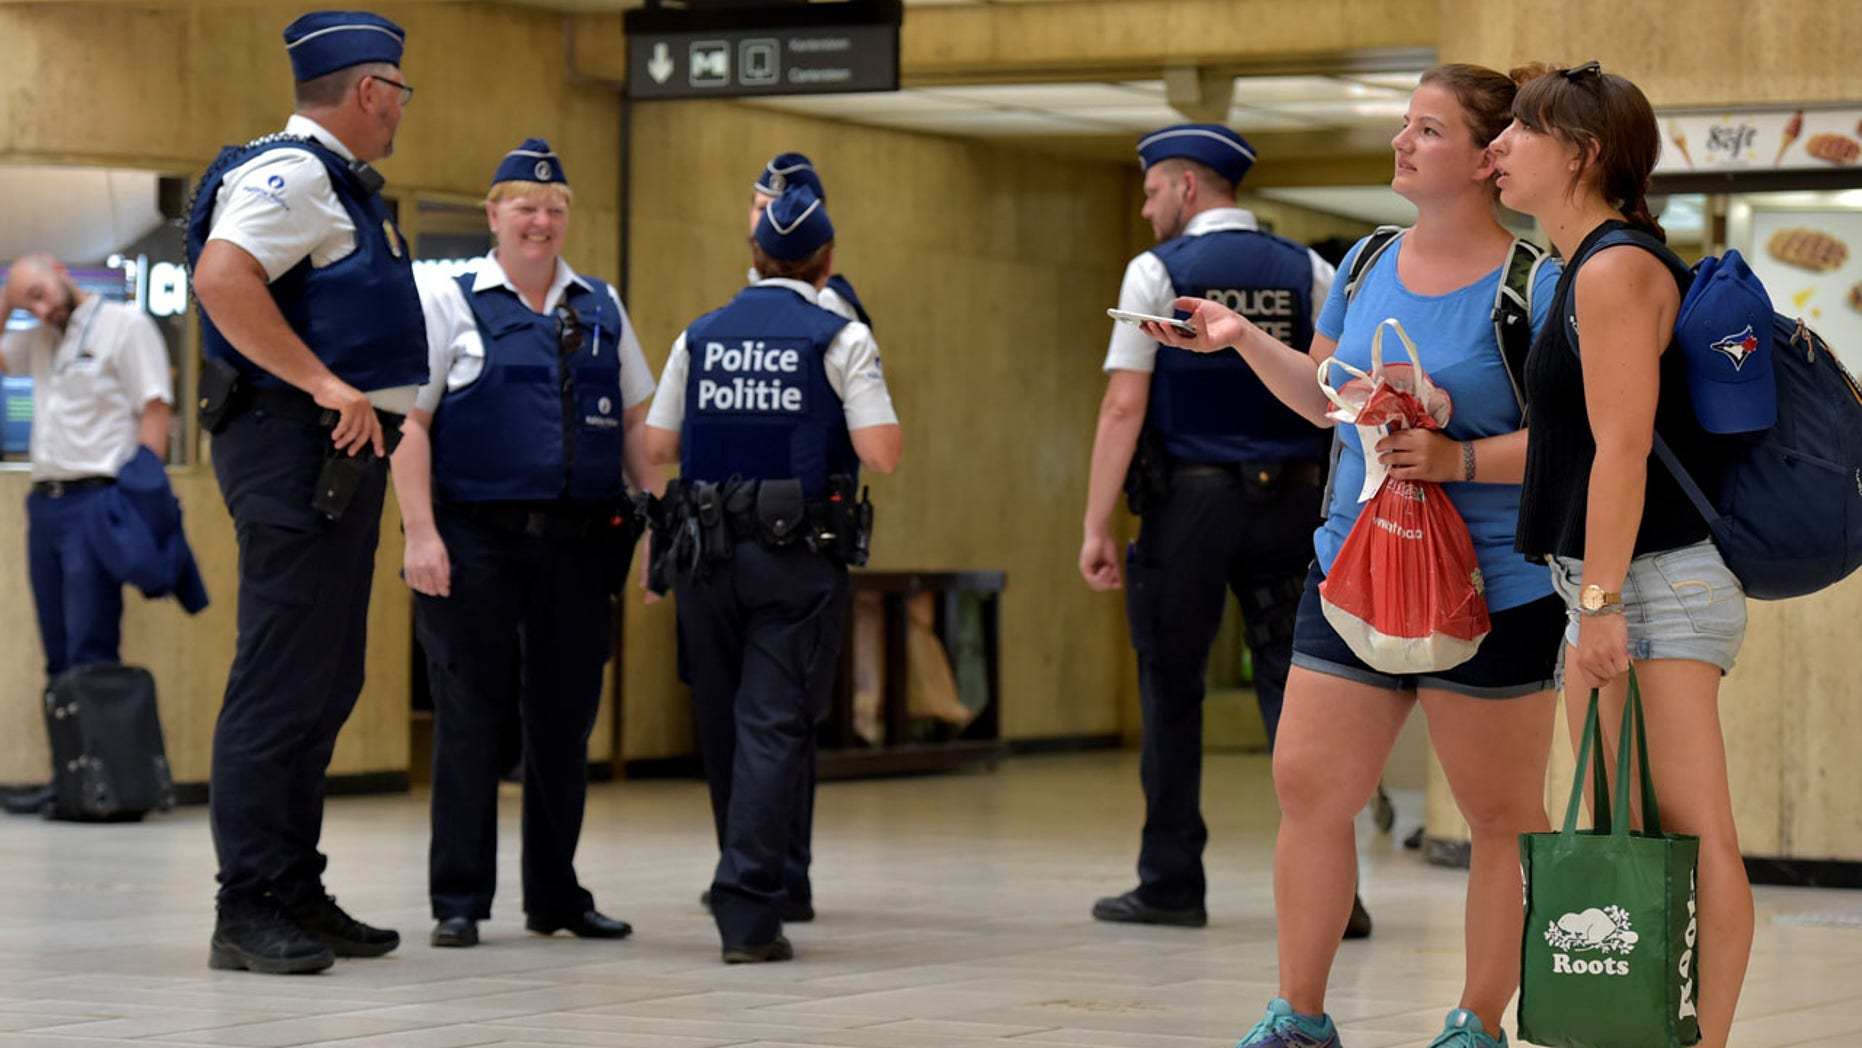 Belgian police officers stand guard in central station in Brussels, Belgium